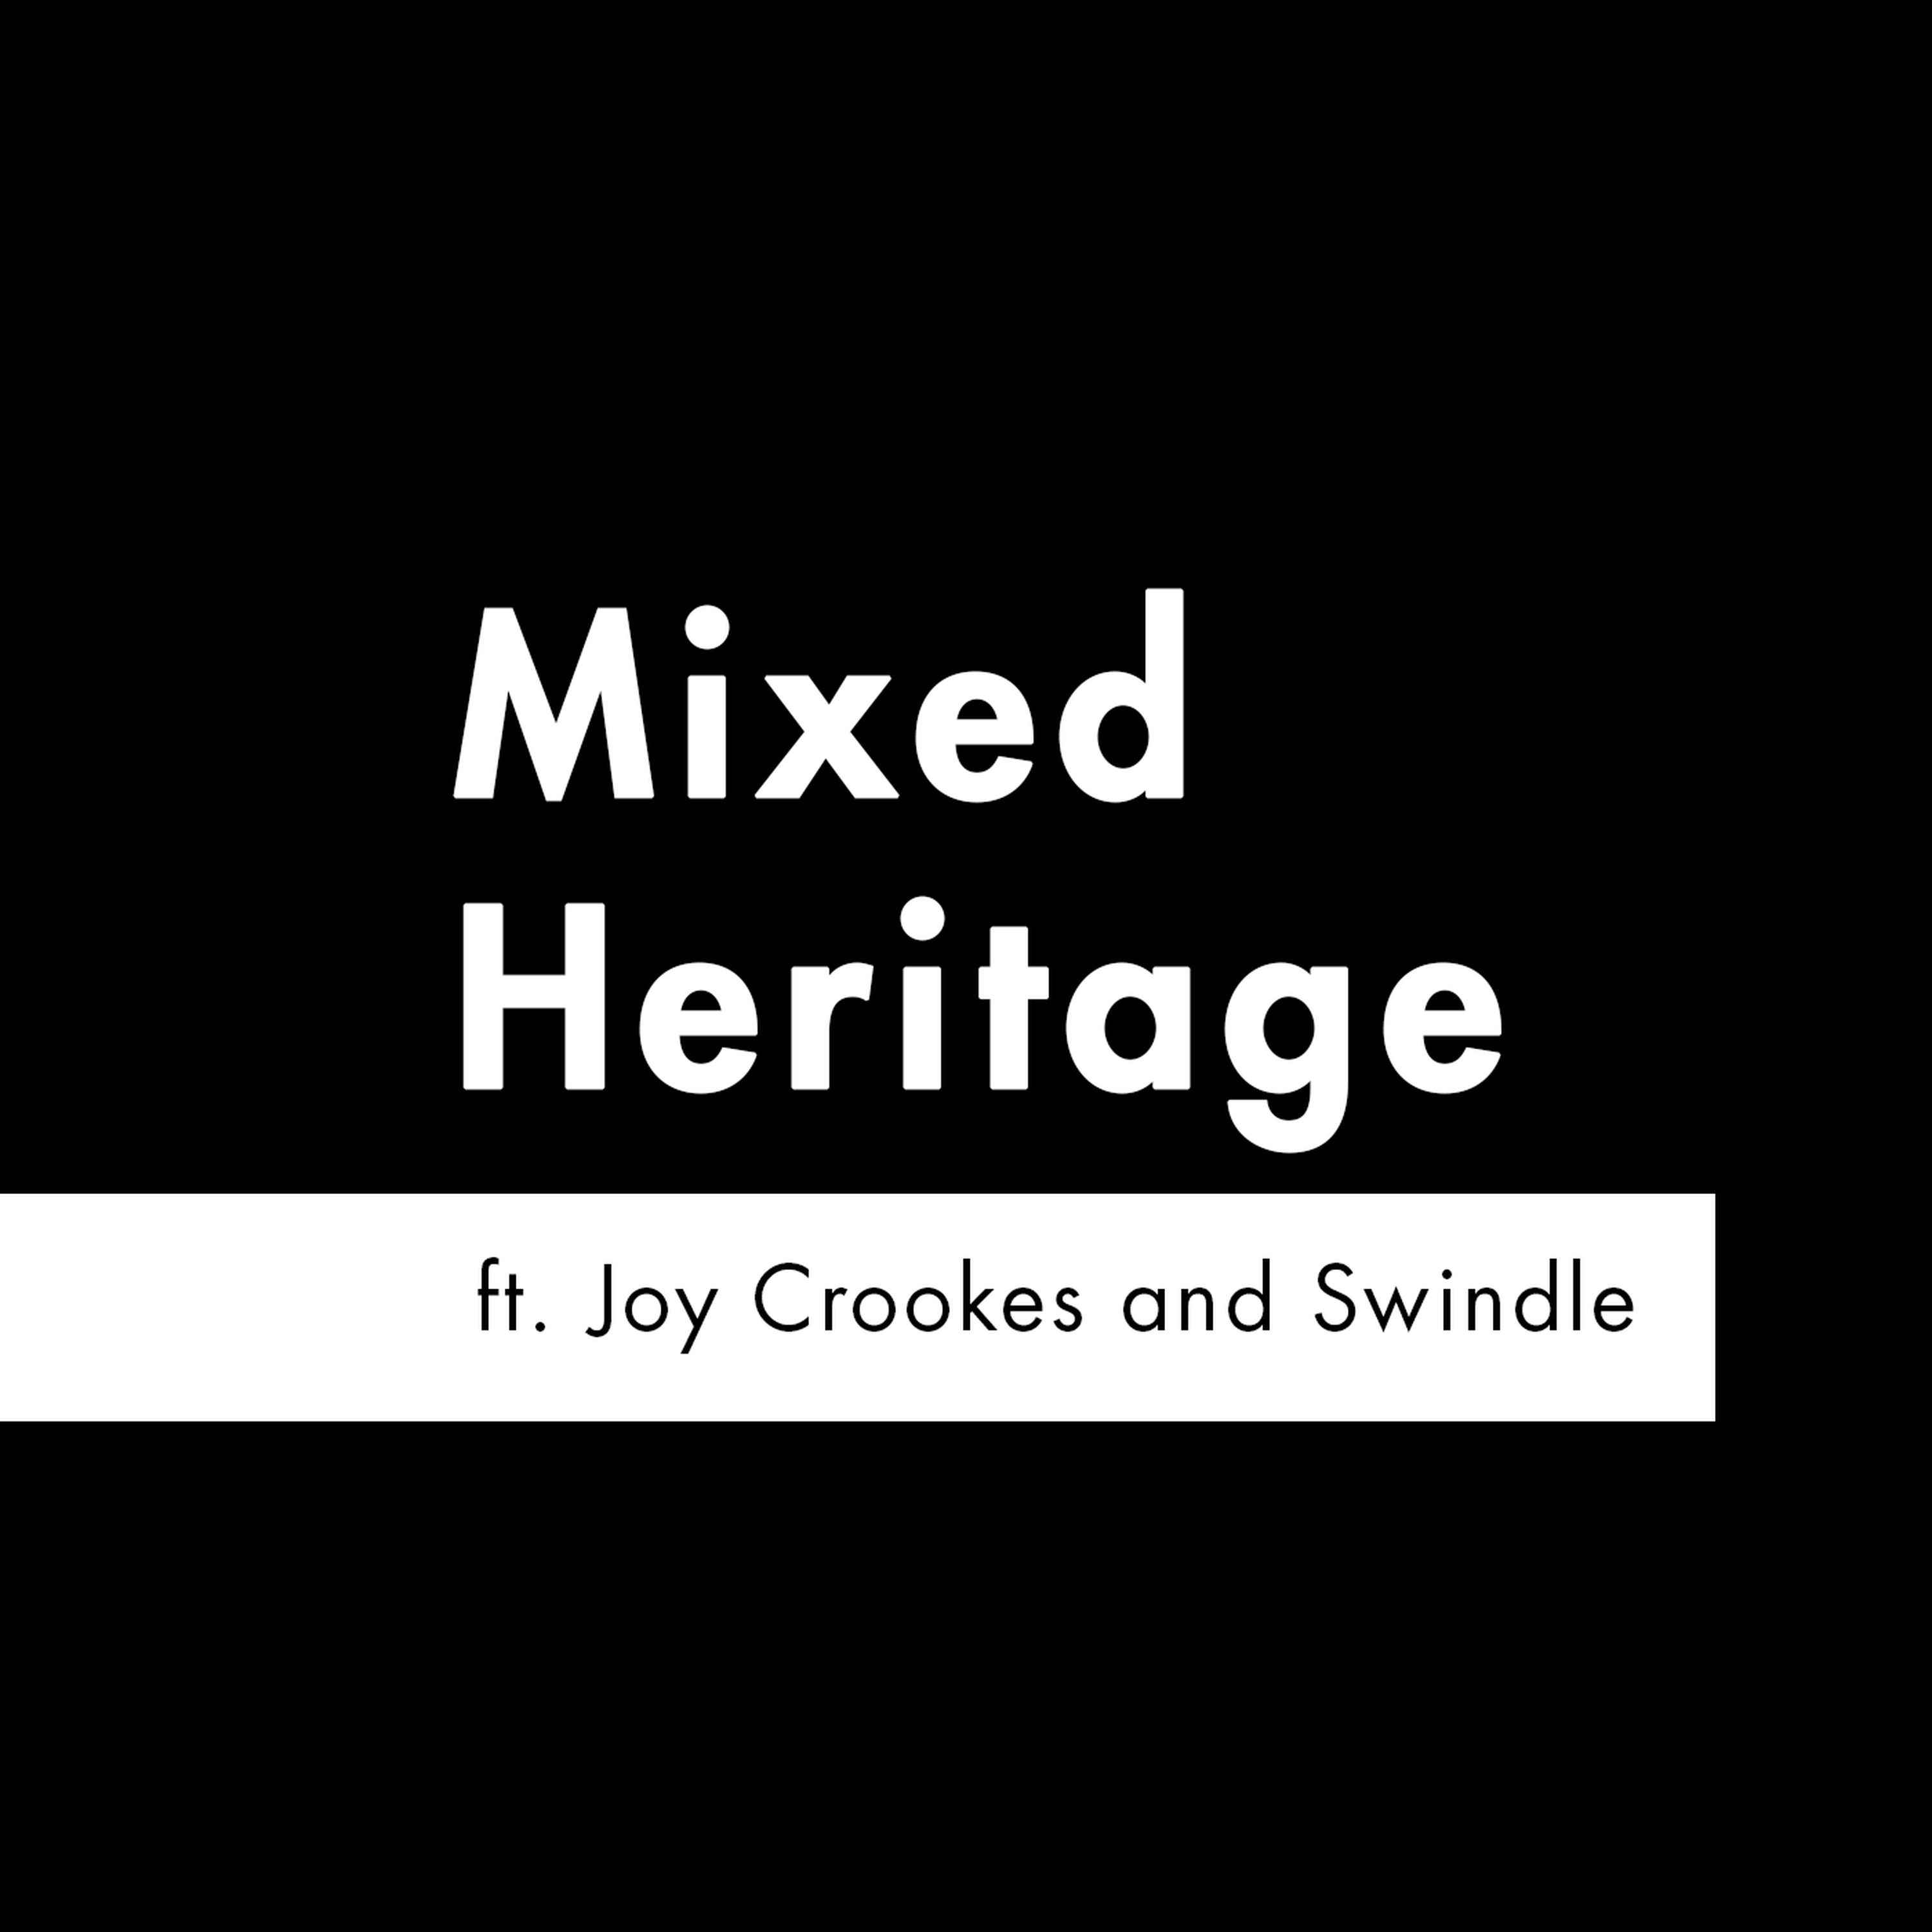 S2 E5 - 'Mixed Heritage' feat. Joy Crookes and Swindle